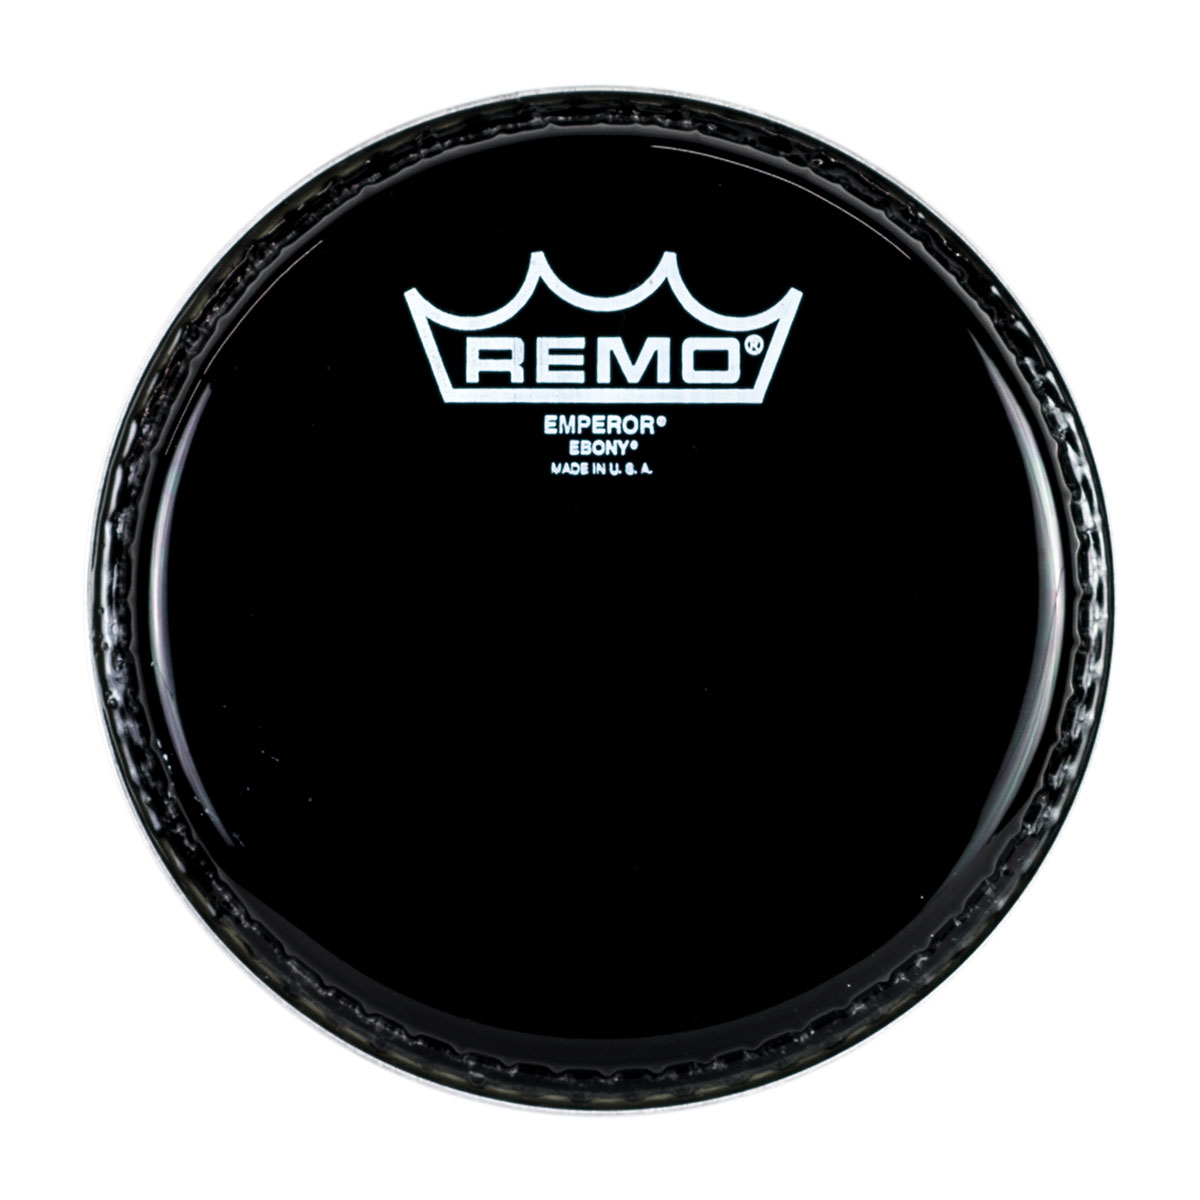 "Remo 6"" Emperor Ebony Drum Head"